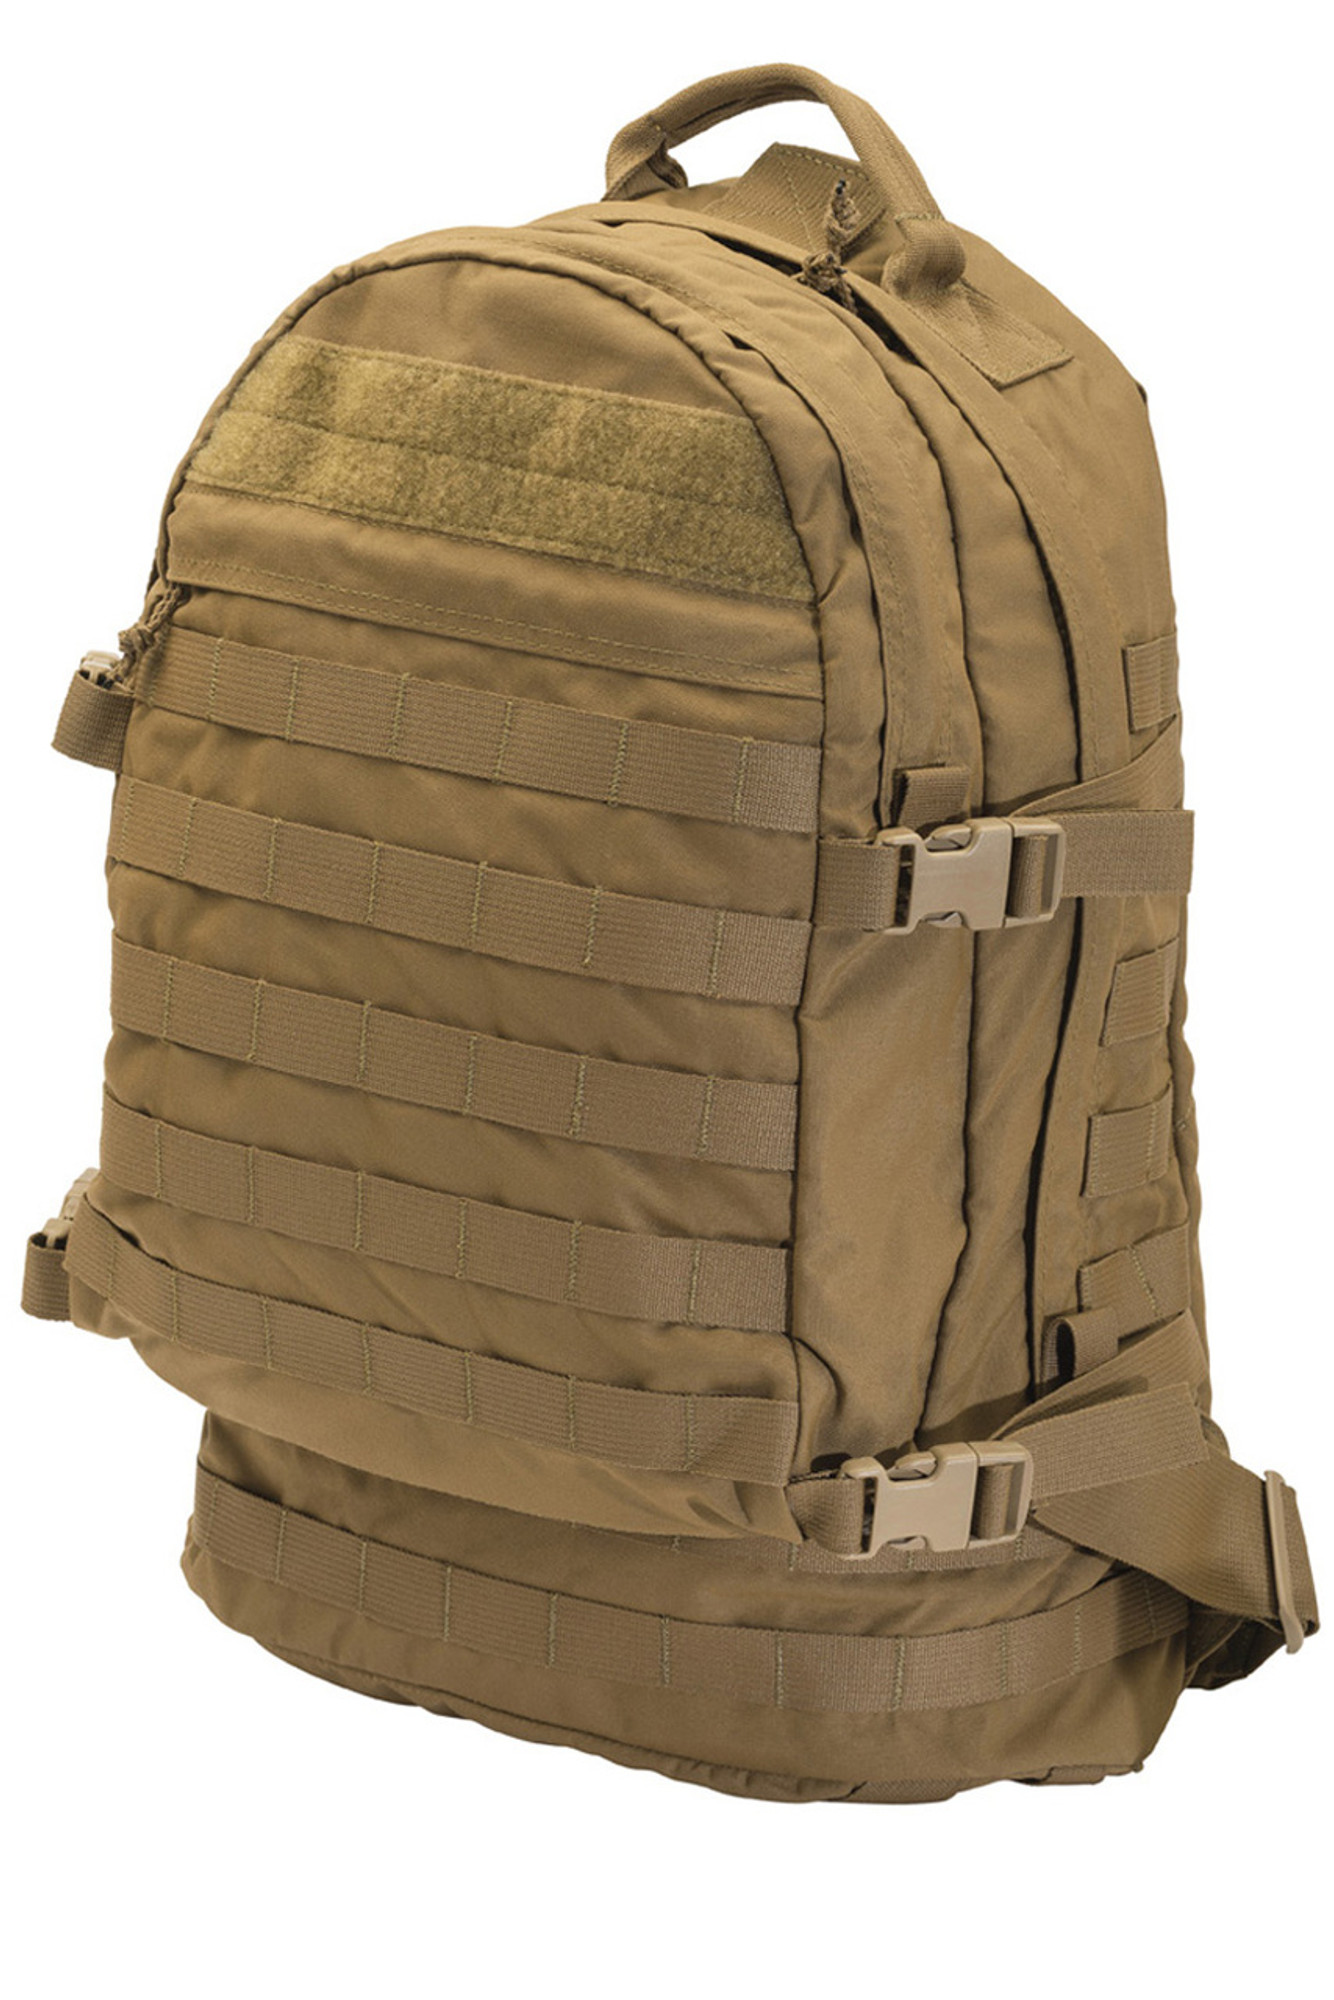 T3 3 Day Hydration Backpack - T3 Gear 8618e2801cd